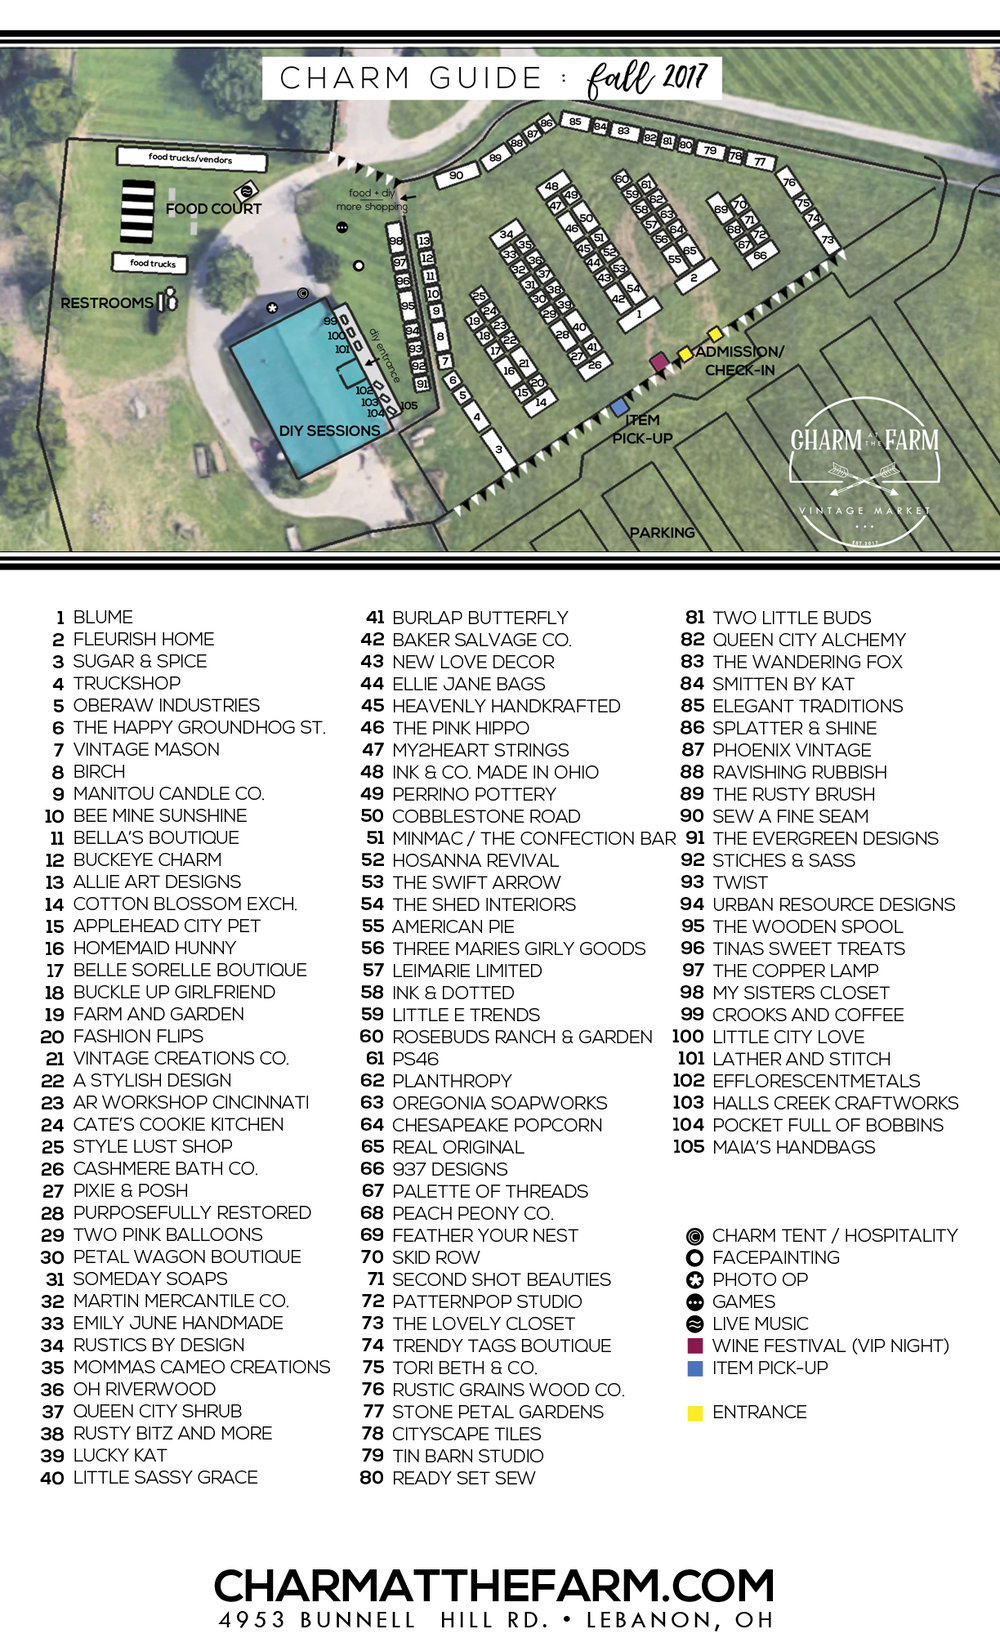 Fall Vendors - Our complete list of vendors for our Charm at the Farm Grand Opening can be found here.In addition to over 100 amazing vendors - there will be food trucks and other charming experiences for you and your besties to take advantage of October 27-29.Can't wait to see you at the Farm!